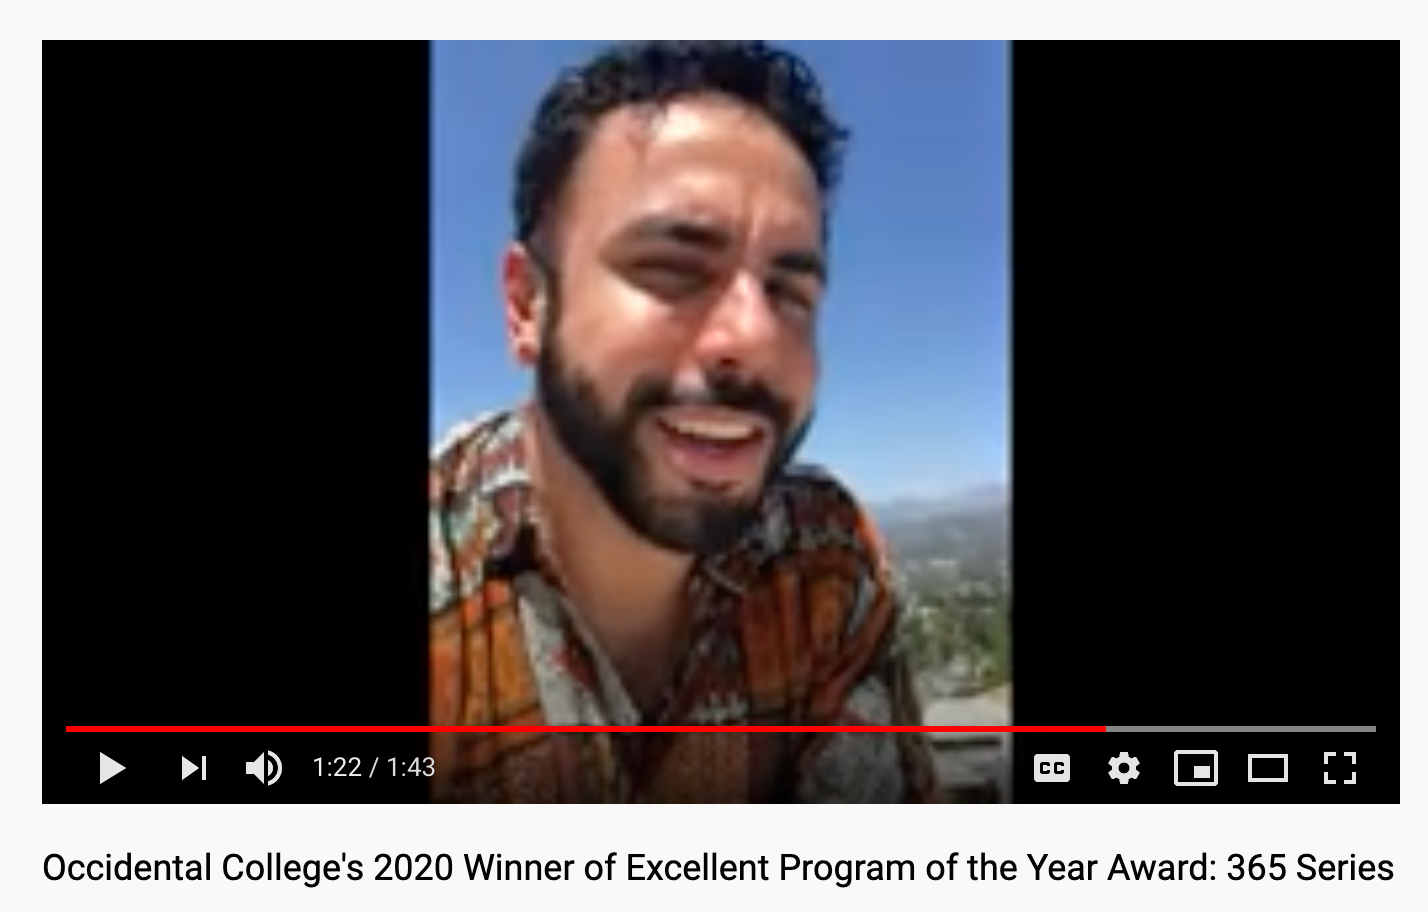 Image of Chris' Video Congratulation BSA, Esther Karpilow, and Habiba Hopson on Excellent Program of the Year Award for 365 Series